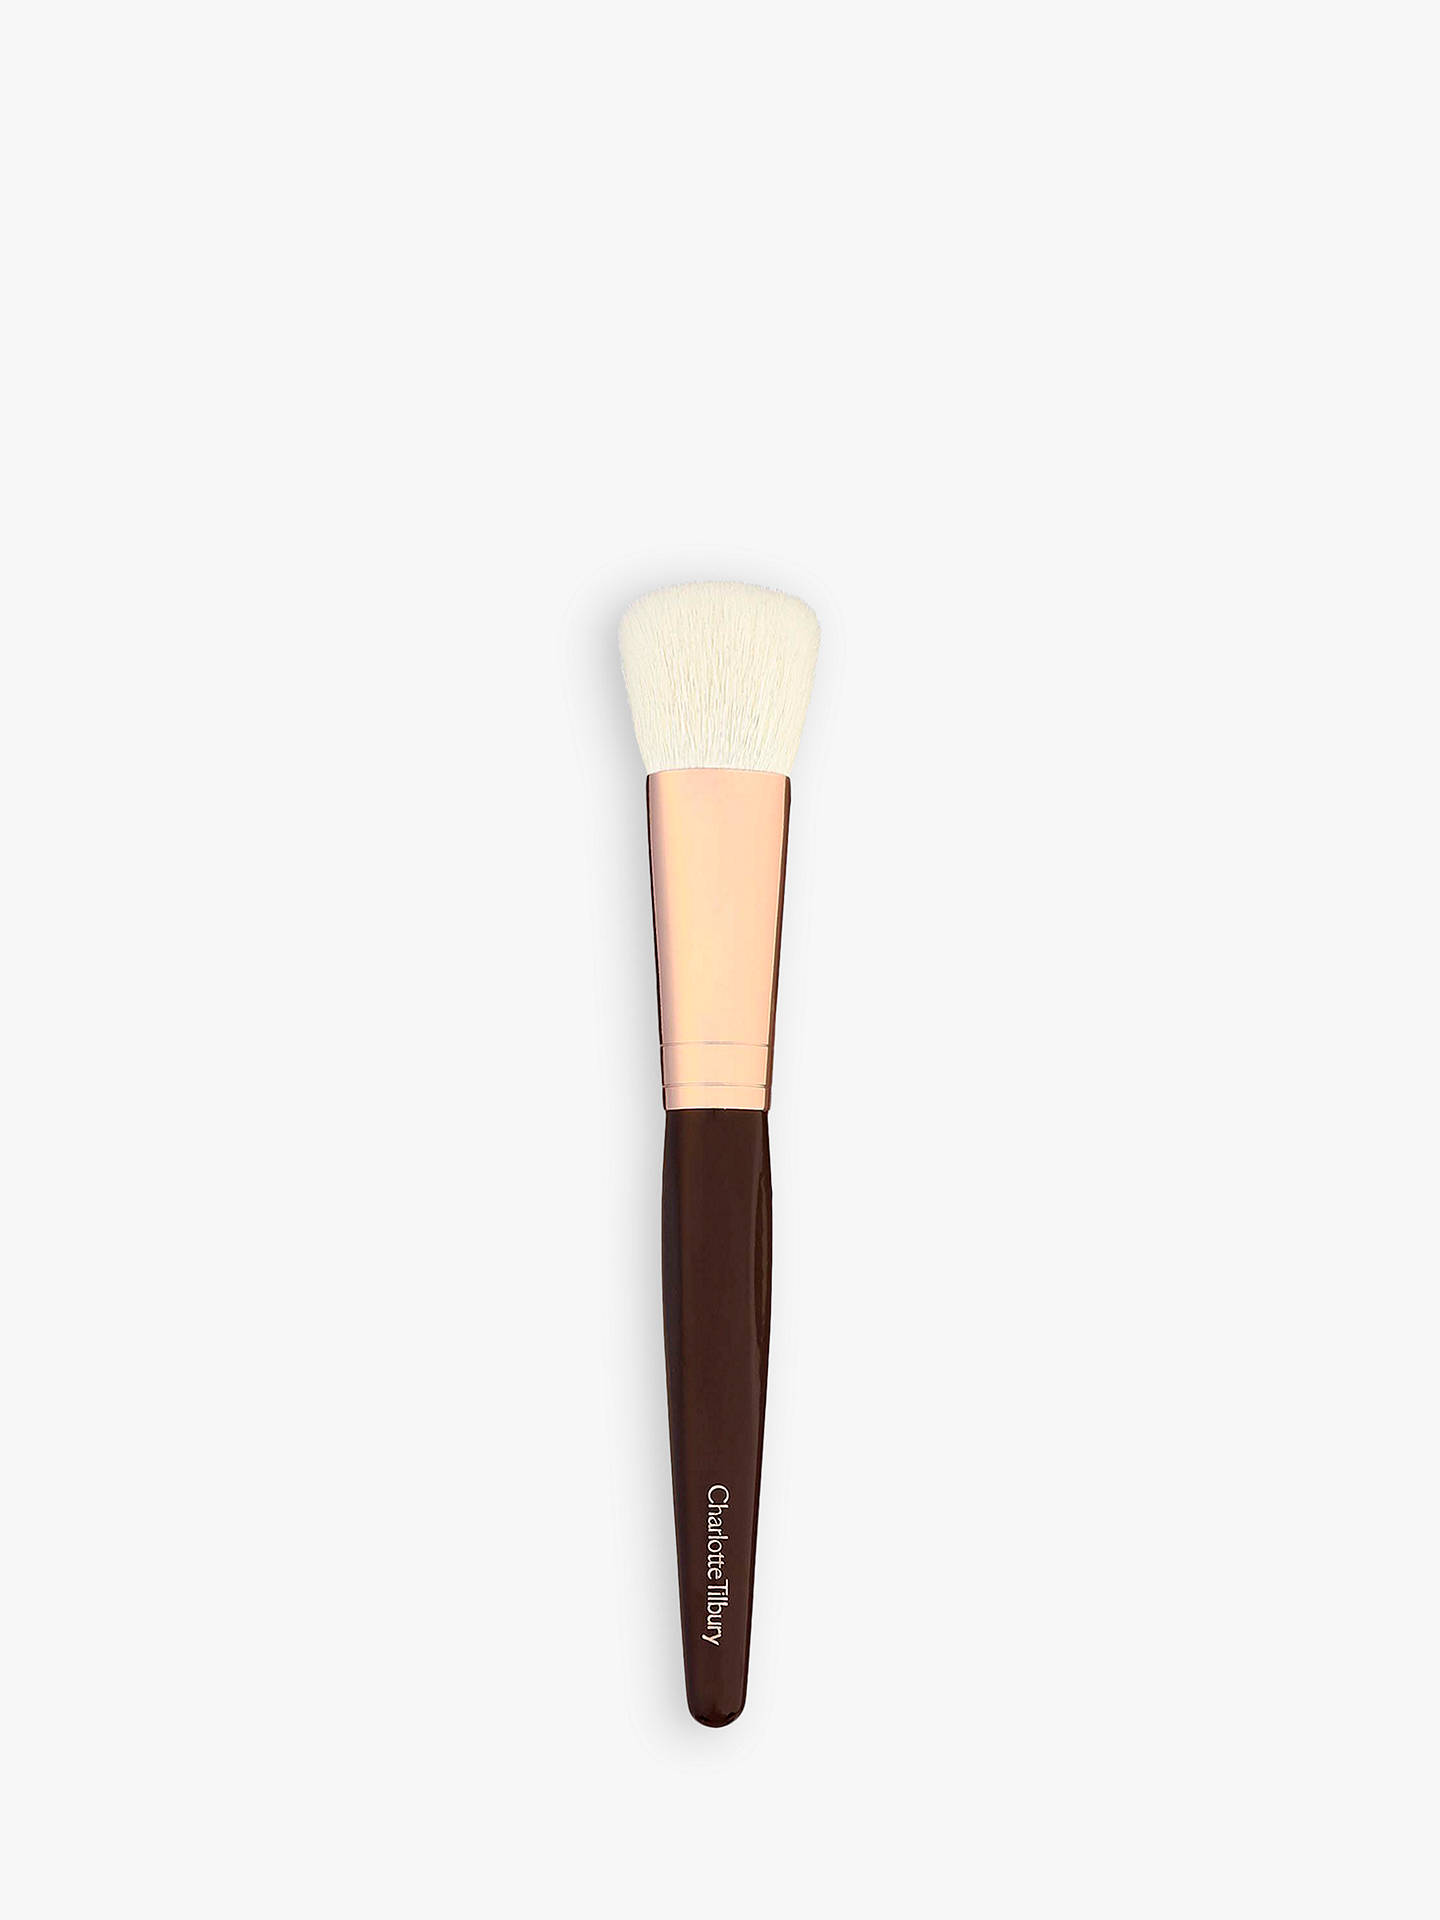 BuyCharlotte Tilbury Magic Complexion Brush Online at johnlewis.com